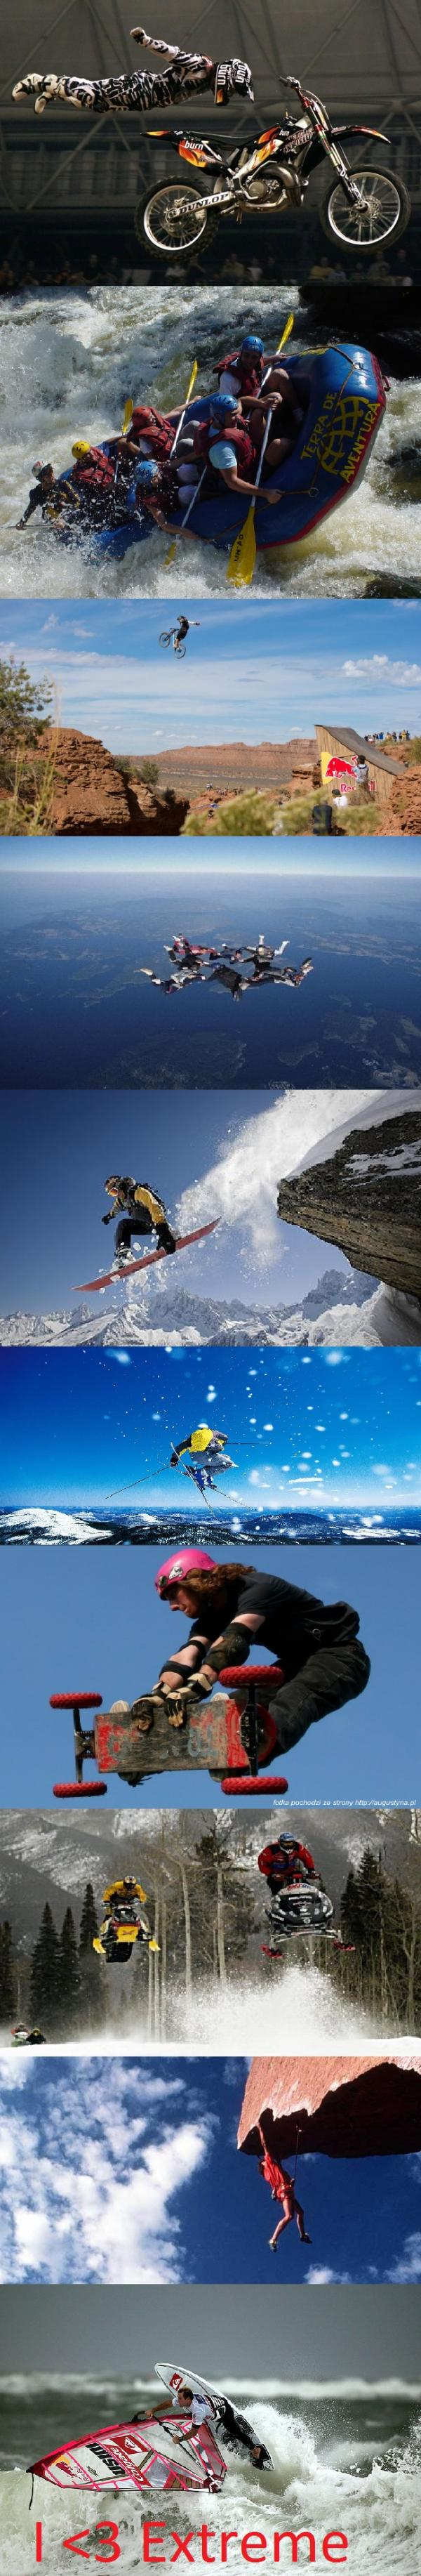 I love extreme sports